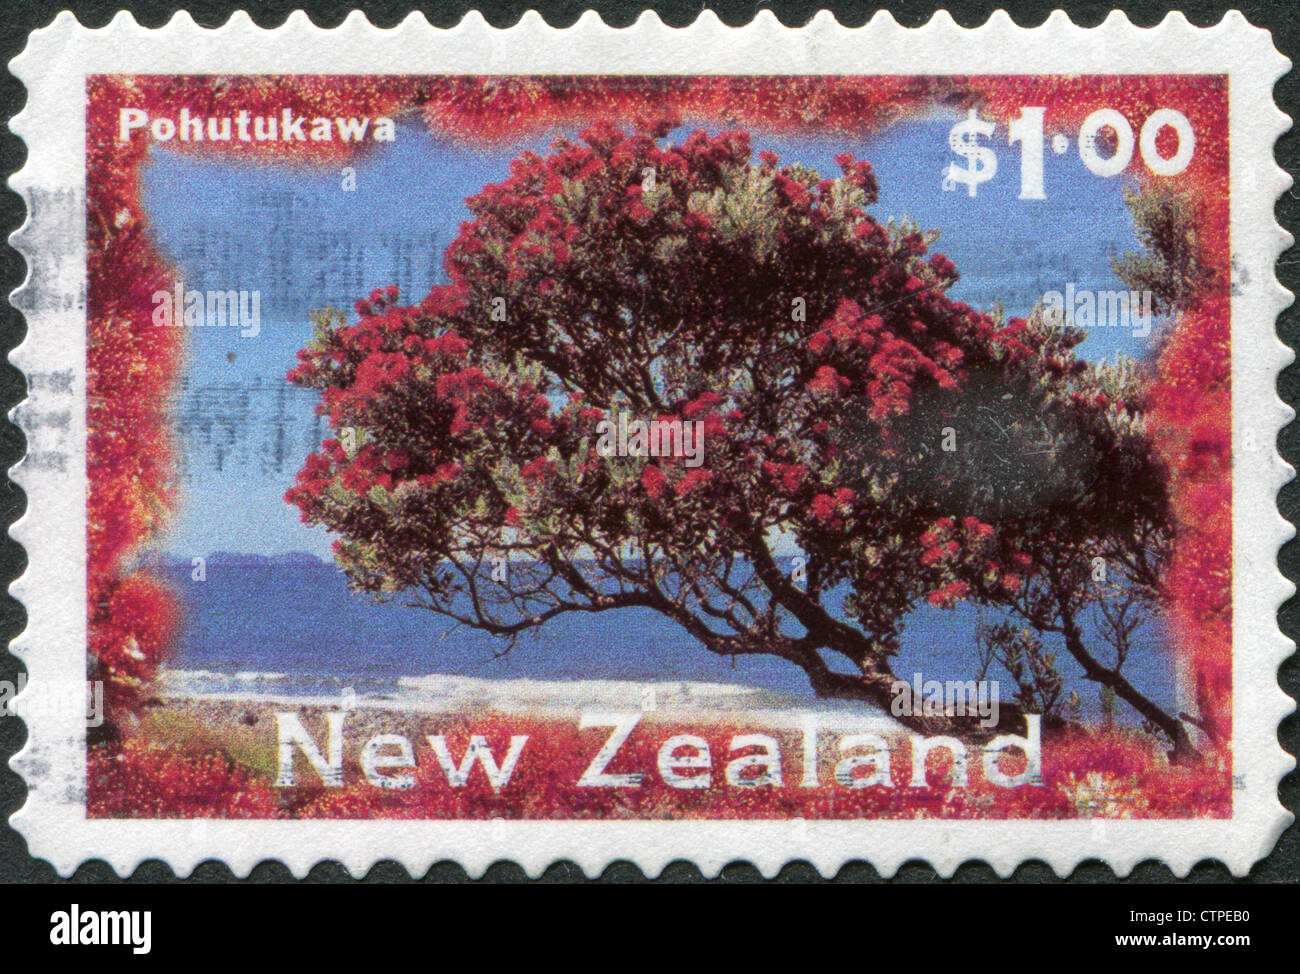 Postage Stamps Printed In New Zealand, Shows A Christmas Tree   Pohutukawa  Tree (Metrosideros Excelsa), Circa 1996